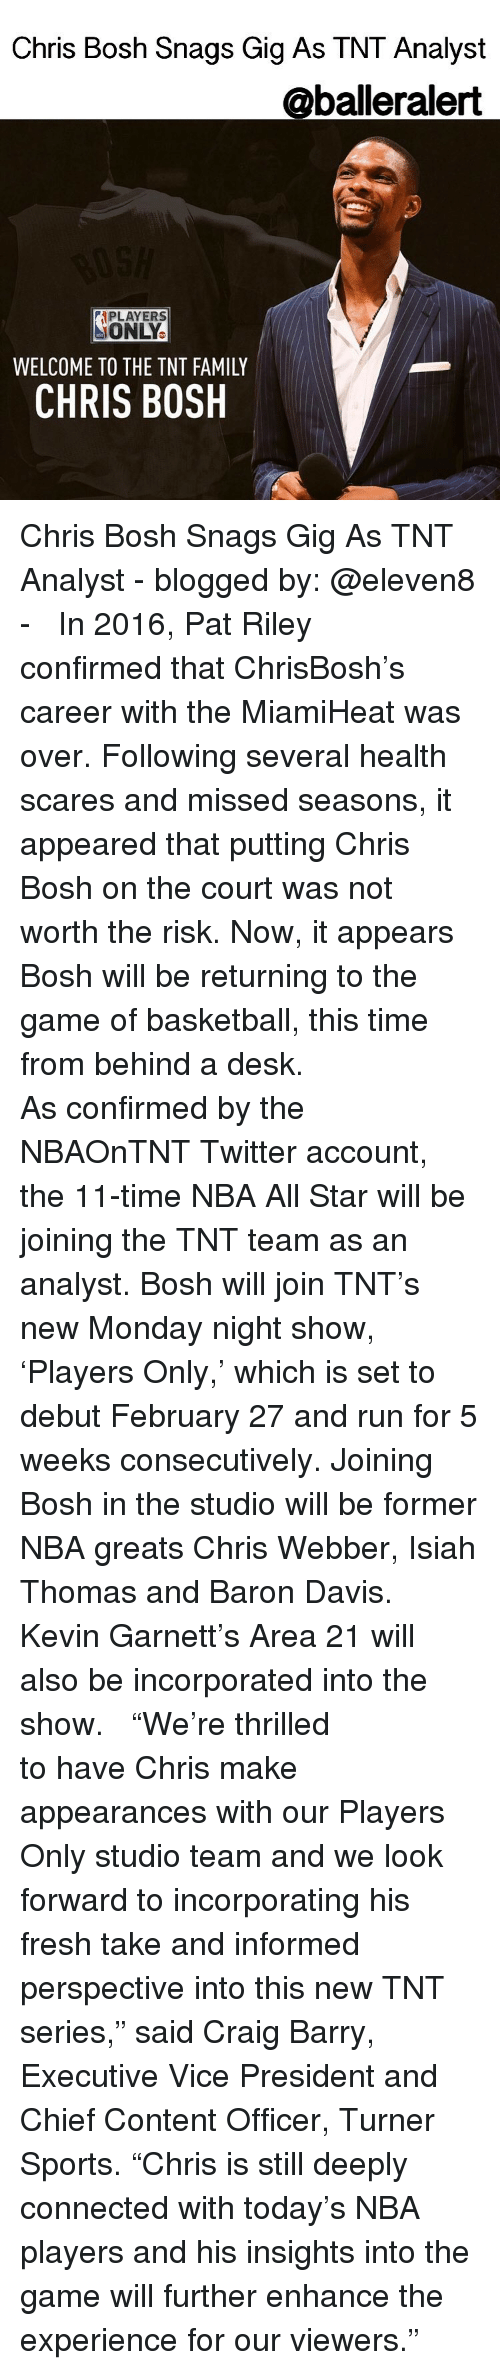 "nba all stars: Chris Bosh Snags Gig As TNT Analyst  @baller alert  APLAYERS  ONLY.  WELCOME TO THE TNT FAMILY  CHRIS BOSH Chris Bosh Snags Gig As TNT Analyst - blogged by: @eleven8 - ⠀⠀⠀⠀⠀⠀⠀⠀ ⠀⠀⠀⠀⠀⠀⠀⠀ In 2016, Pat Riley confirmed that ChrisBosh's career with the MiamiHeat was over. Following several health scares and missed seasons, it appeared that putting Chris Bosh on the court was not worth the risk. Now, it appears Bosh will be returning to the game of basketball, this time from behind a desk. ⠀⠀⠀⠀⠀⠀⠀⠀ ⠀⠀⠀⠀⠀⠀⠀⠀ As confirmed by the NBAOnTNT Twitter account, the 11-time NBA All Star will be joining the TNT team as an analyst. Bosh will join TNT's new Monday night show, 'Players Only,' which is set to debut February 27 and run for 5 weeks consecutively. Joining Bosh in the studio will be former NBA greats Chris Webber, Isiah Thomas and Baron Davis. Kevin Garnett's Area 21 will also be incorporated into the show. ⠀⠀⠀⠀⠀⠀⠀⠀ ⠀⠀⠀⠀⠀⠀⠀⠀ ""We're thrilled to have Chris make appearances with our Players Only studio team and we look forward to incorporating his fresh take and informed perspective into this new TNT series,"" said Craig Barry, Executive Vice President and Chief Content Officer, Turner Sports. ""Chris is still deeply connected with today's NBA players and his insights into the game will further enhance the experience for our viewers."""